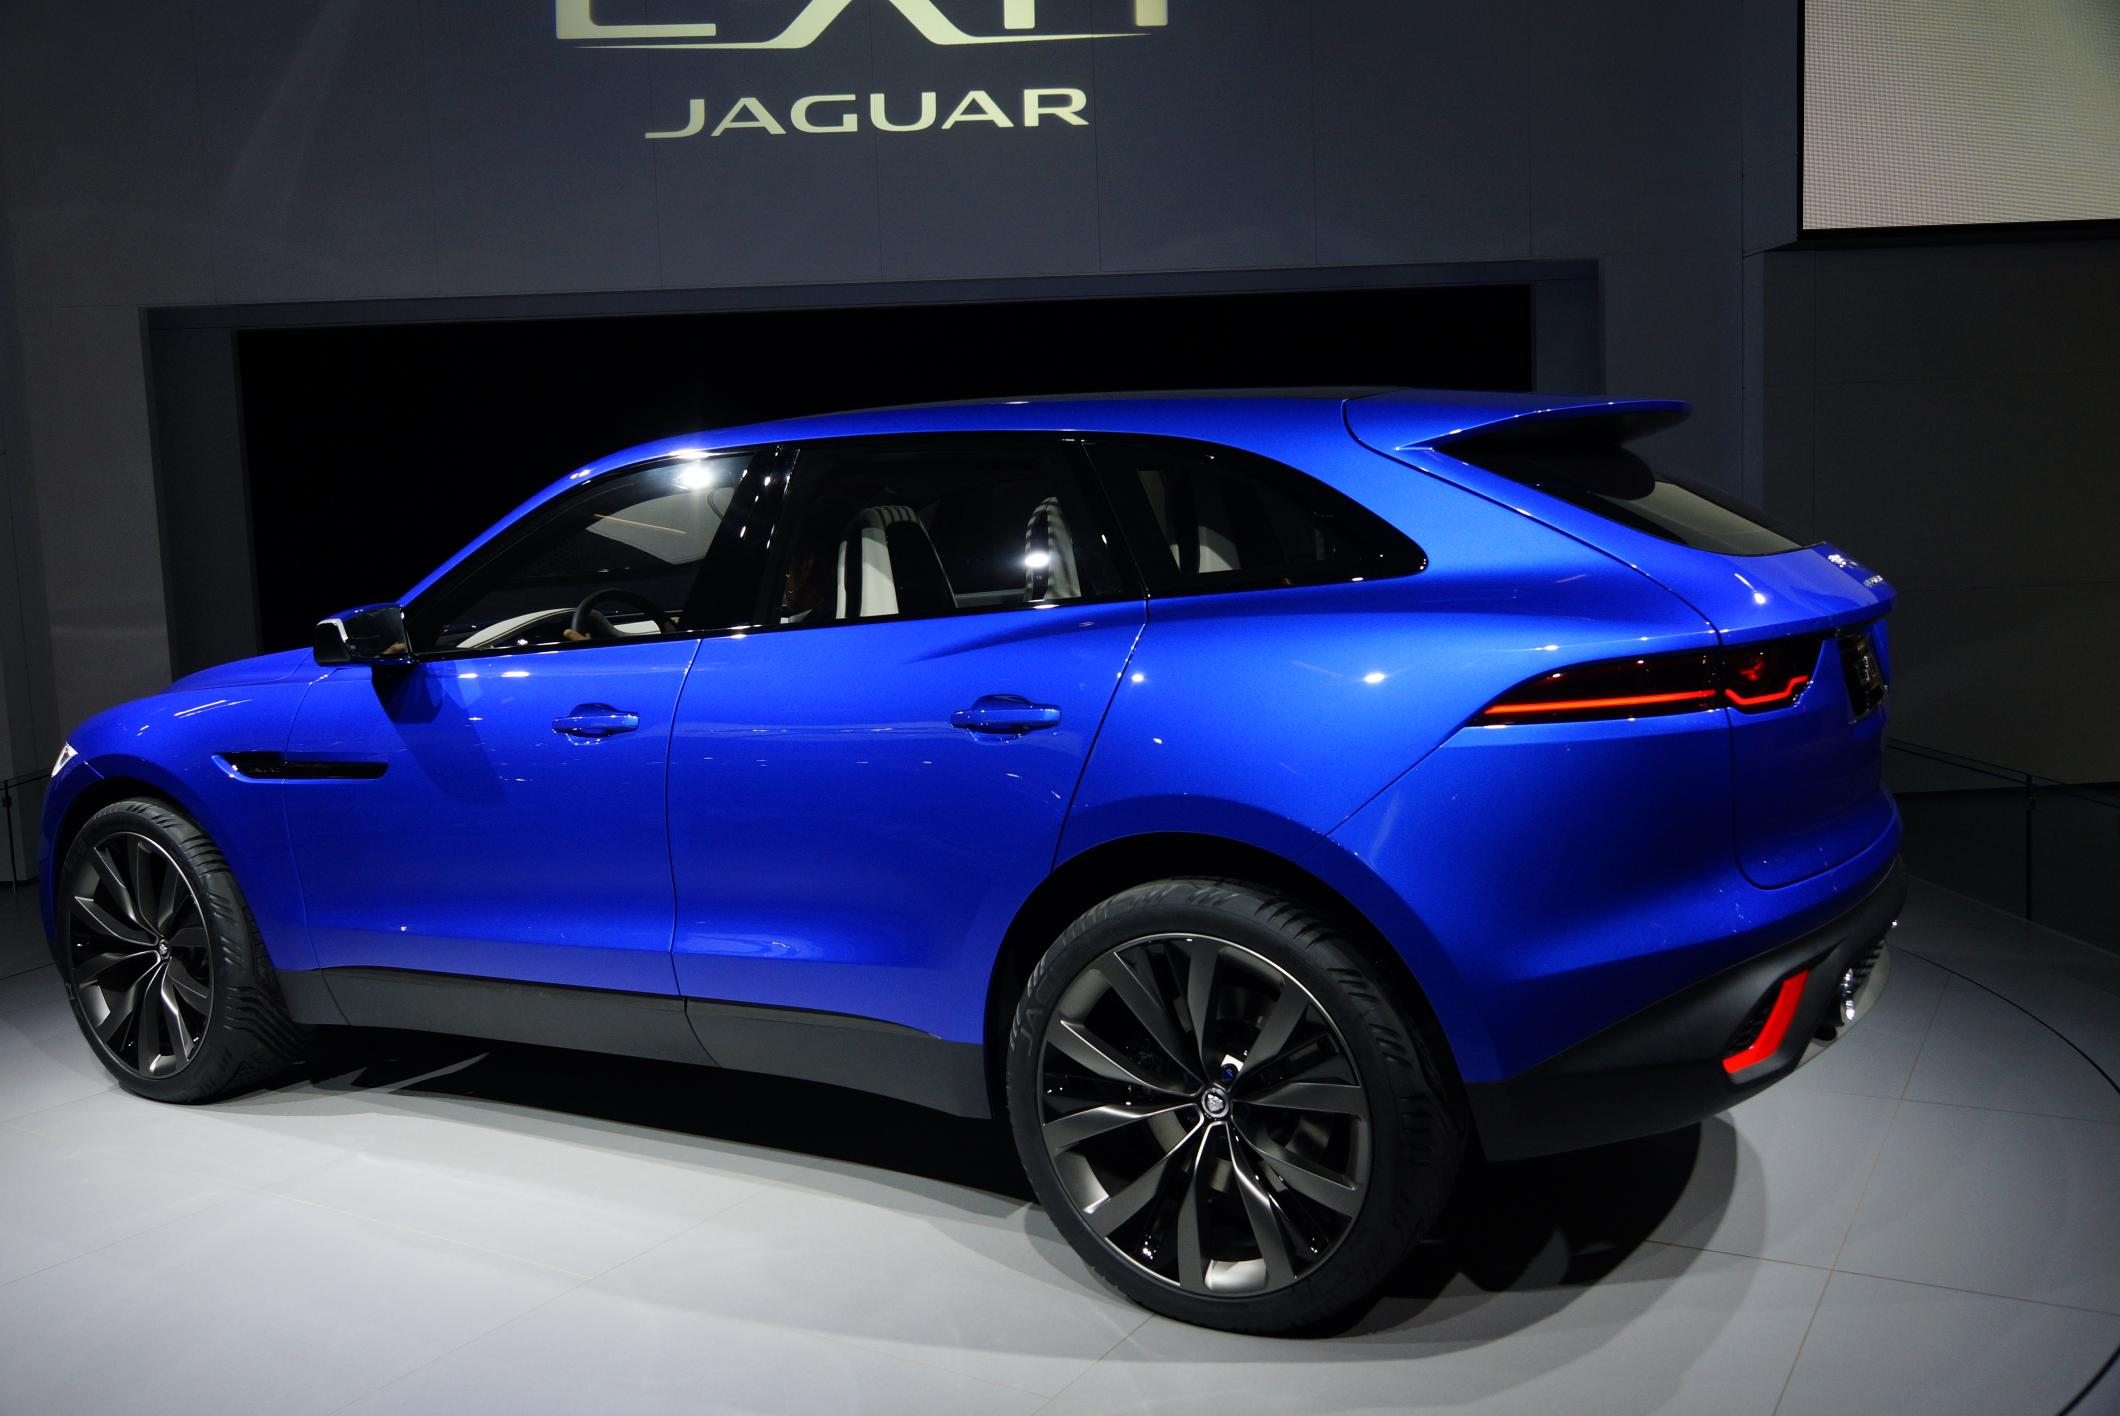 2019 Jaguar C X17 Concept photo - 5